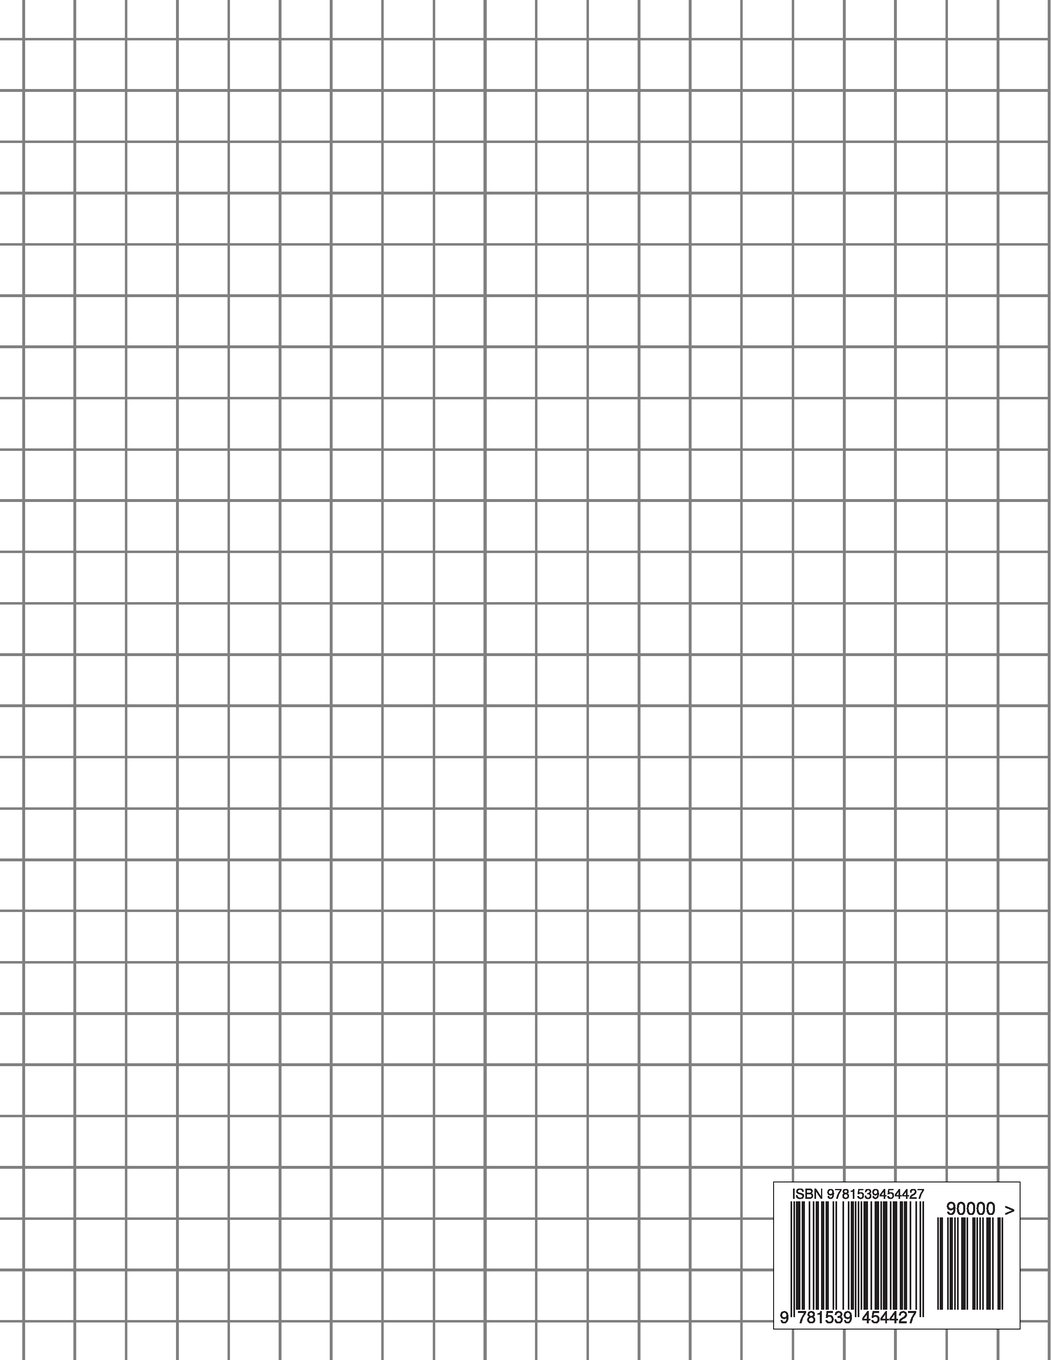 worksheet Graph Paper Images graph paper notebook 1 cm squares metric 120 pages and more 9781539454427 amazon com books